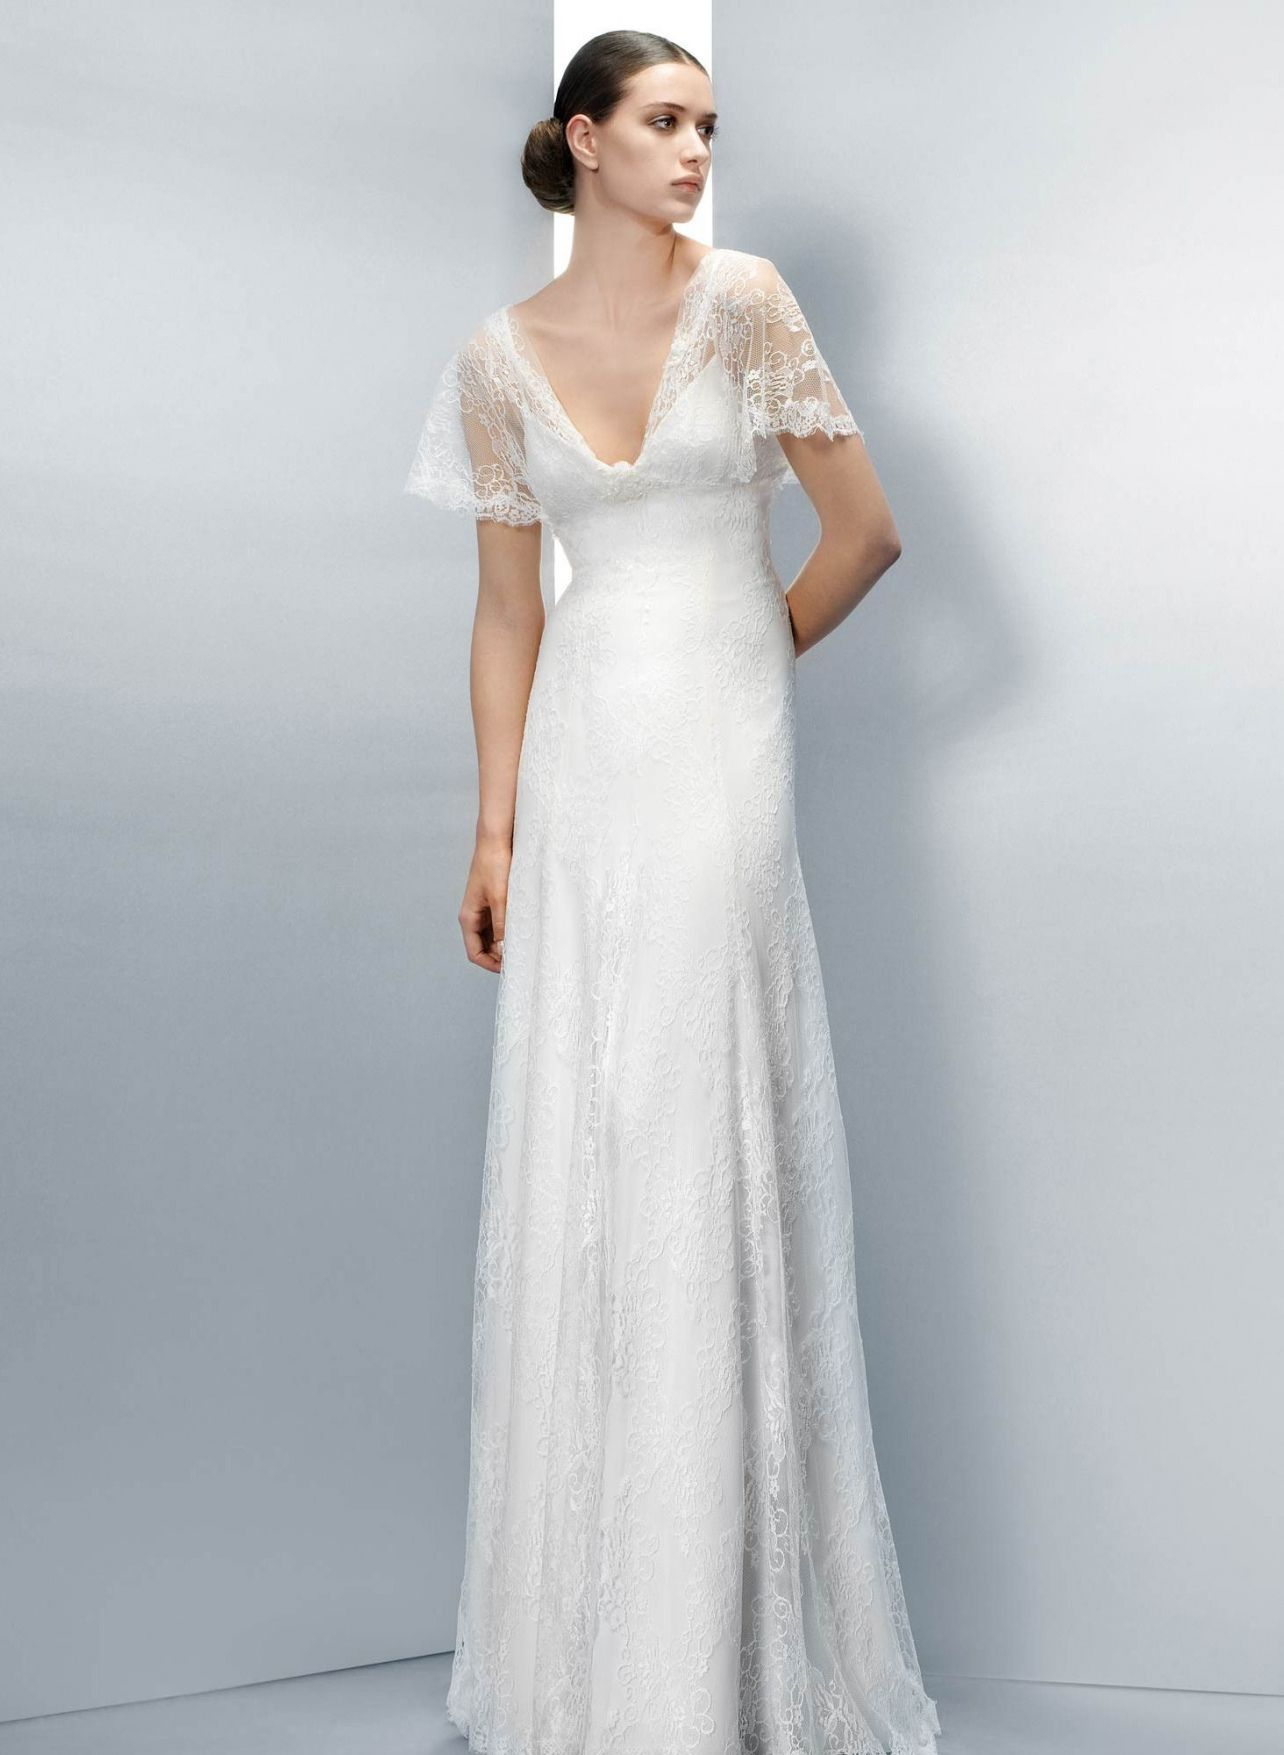 Perfect 40s Wedding Dress Collection - Colorful Wedding Dress Ideas ...